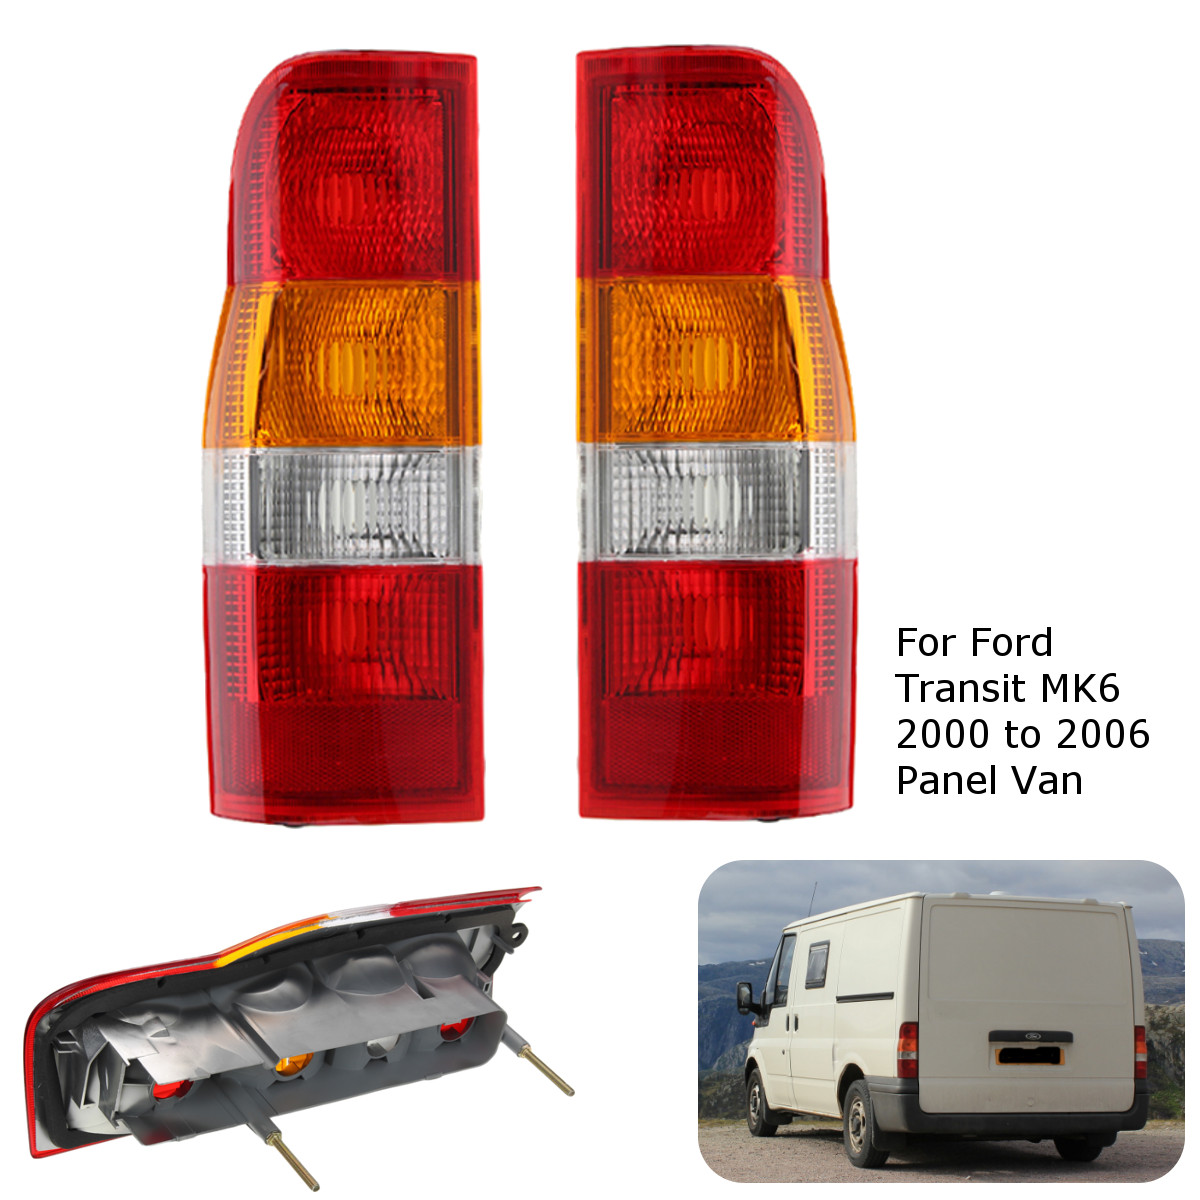 Ford Tourneo Connect 2002-2009 LH Rear Light Tail Light Lamp with Socket